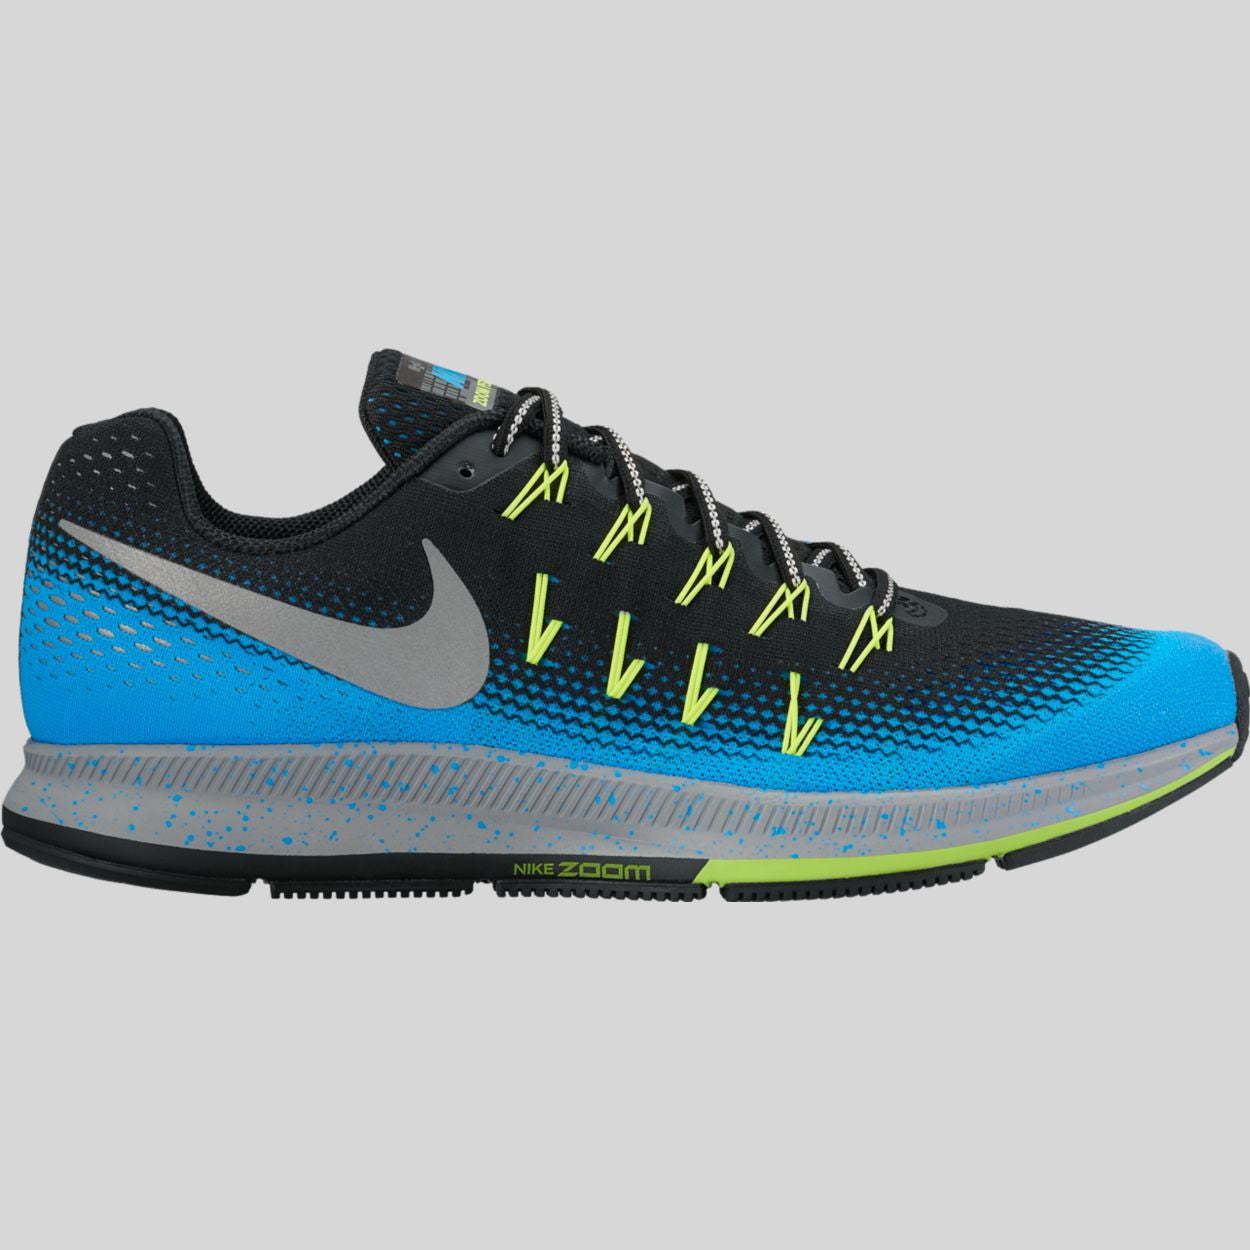 5452f65ca63b8 ... spain nike air zoom pegasus 33 shield black metallic silver blue glow  849564 004 5bbbf e1814